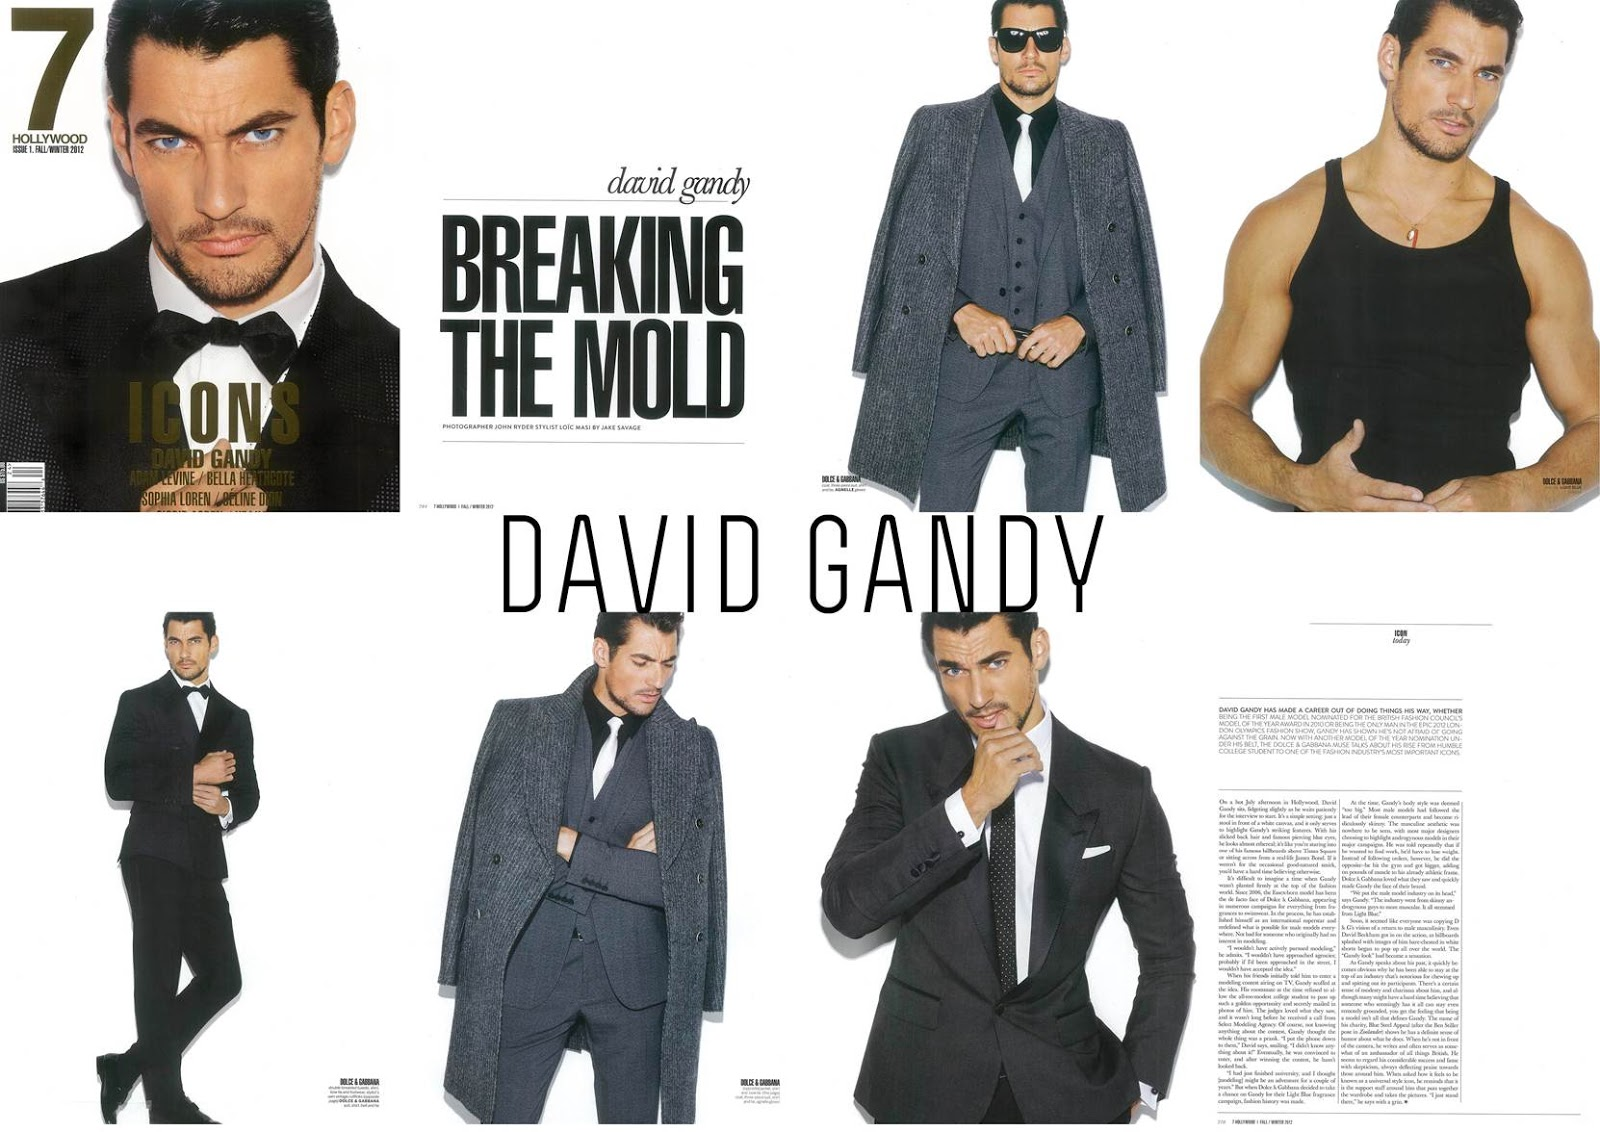 http://2.bp.blogspot.com/-VAg-JRnYFNA/UTXqWSUhDRI/AAAAAAAACZI/-W_uWT8naW0/s1600/David+Gandy.Breaking+The+Mold.jpg